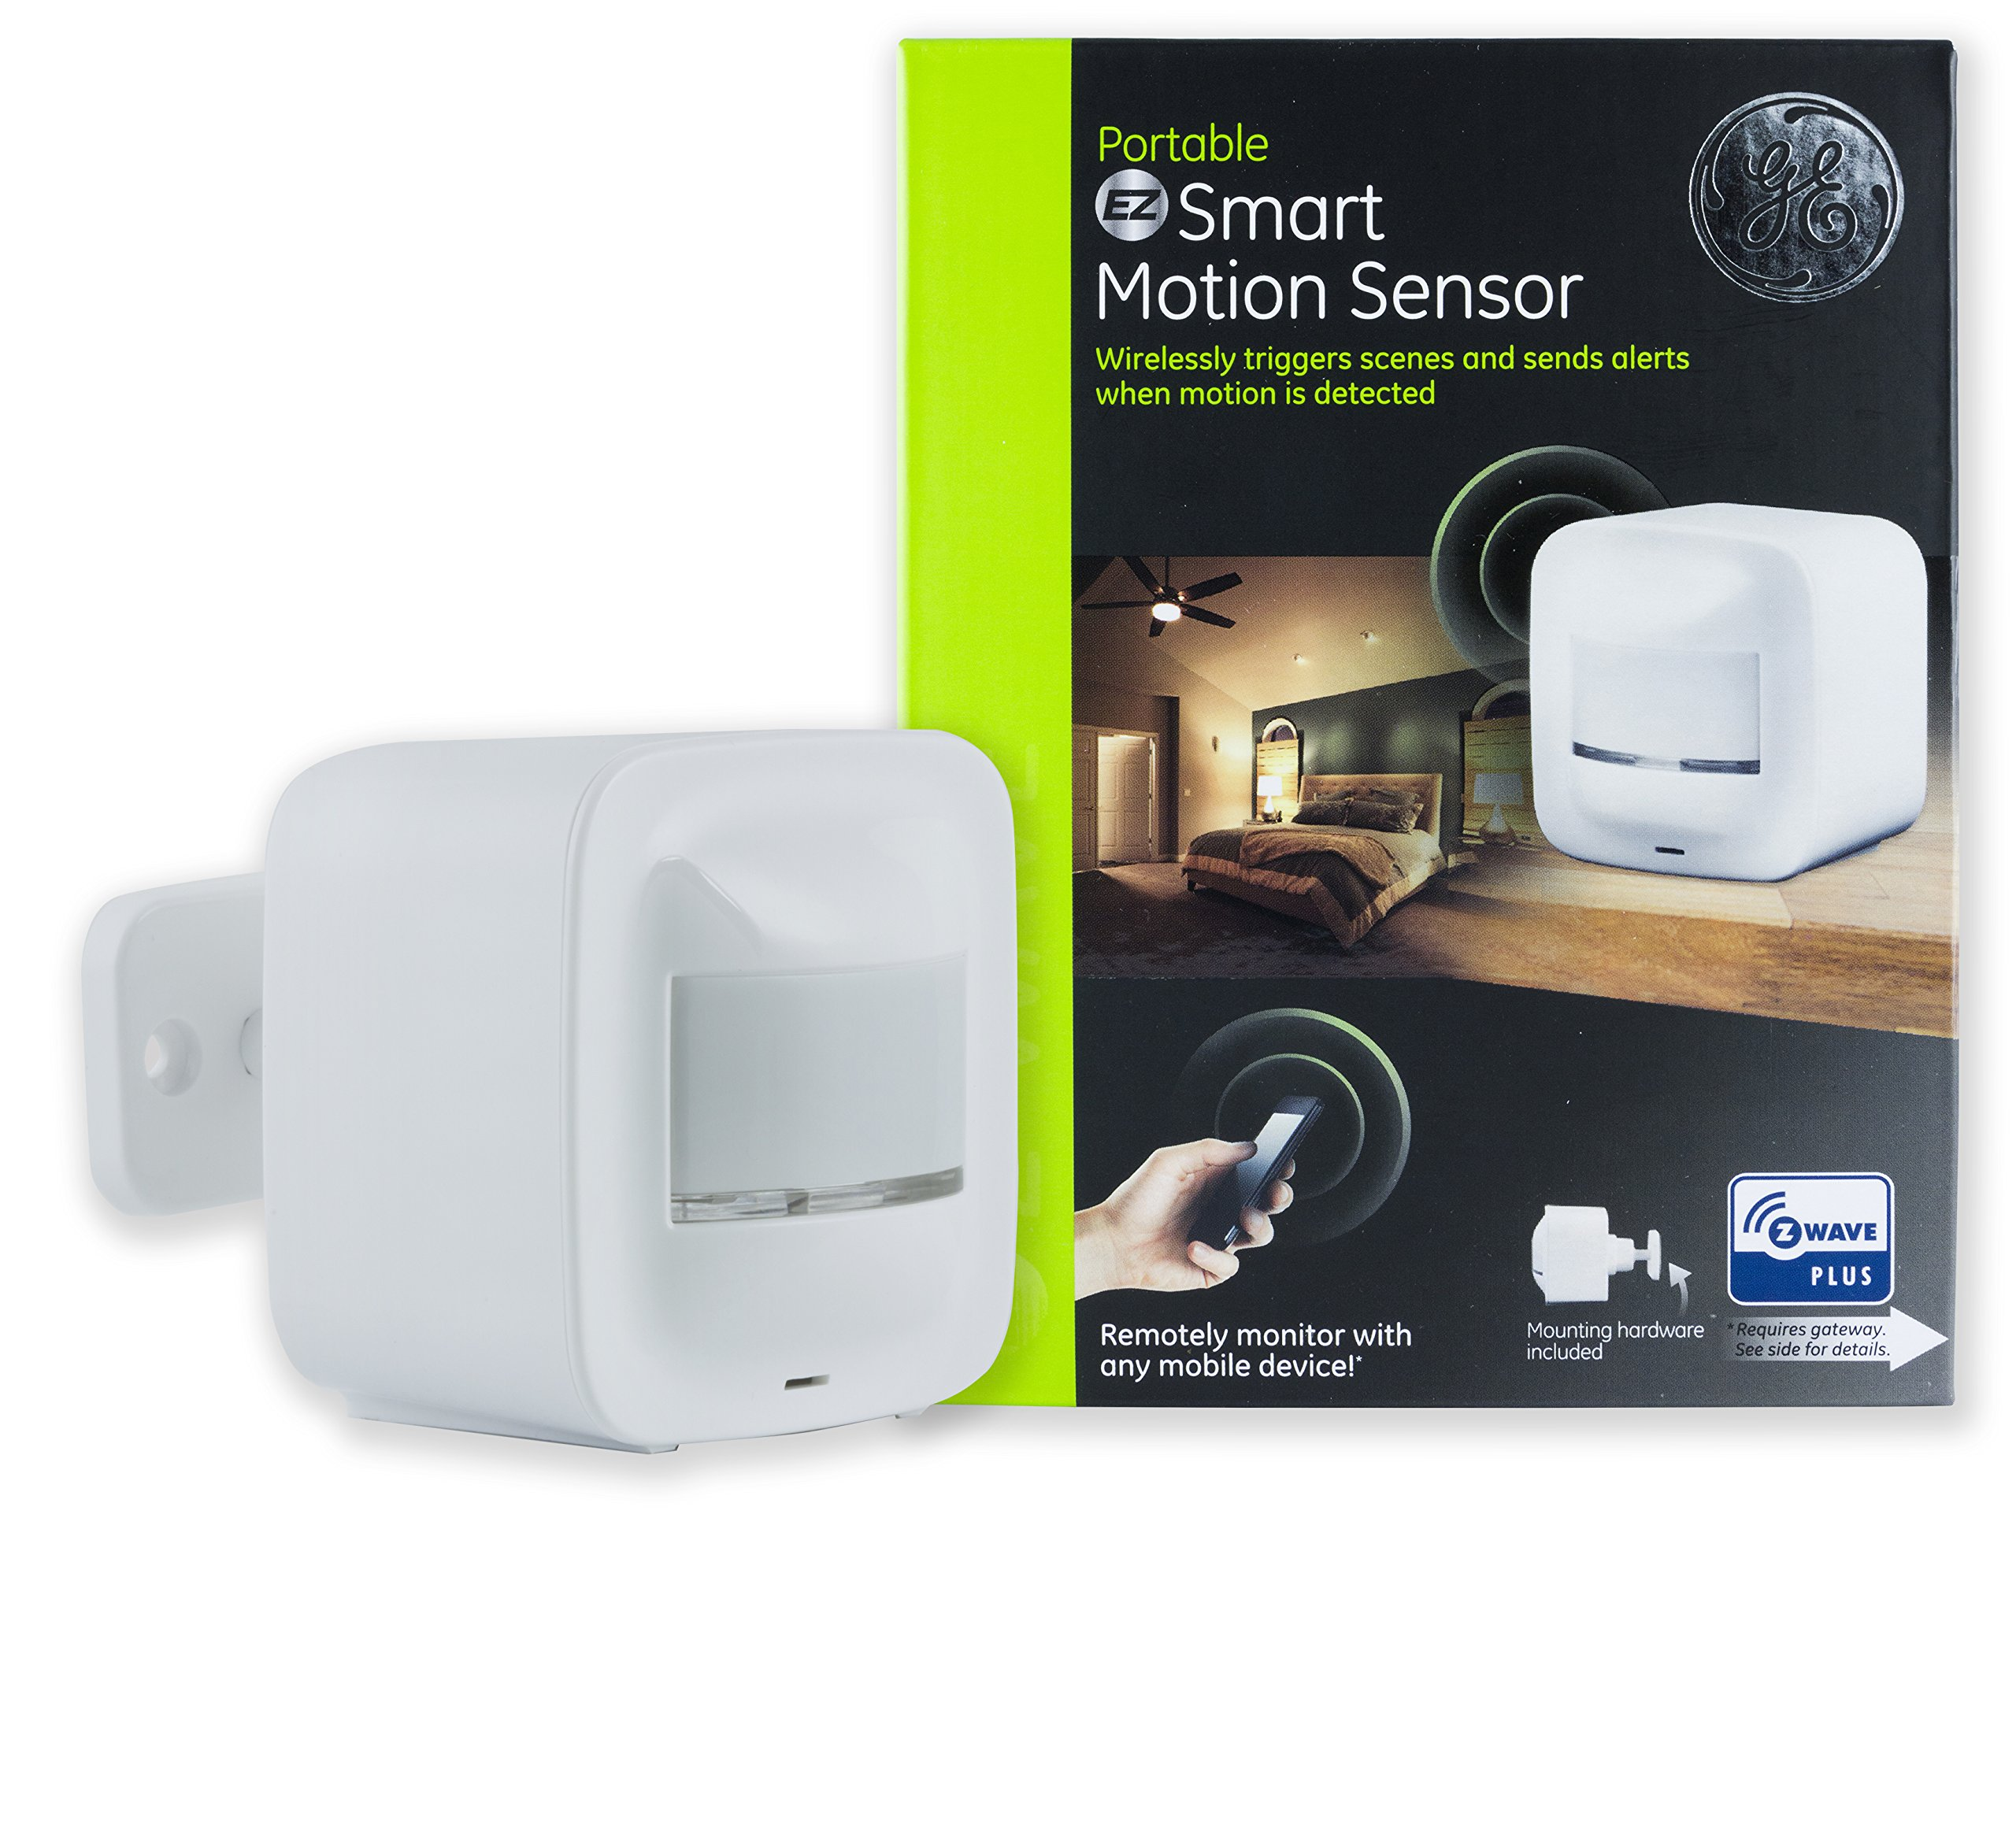 GE Z-Wave Plus Wireless Smart Sensor, Motion Only, Portable, White, for Scene Activation and Remote Monitoring, 34193